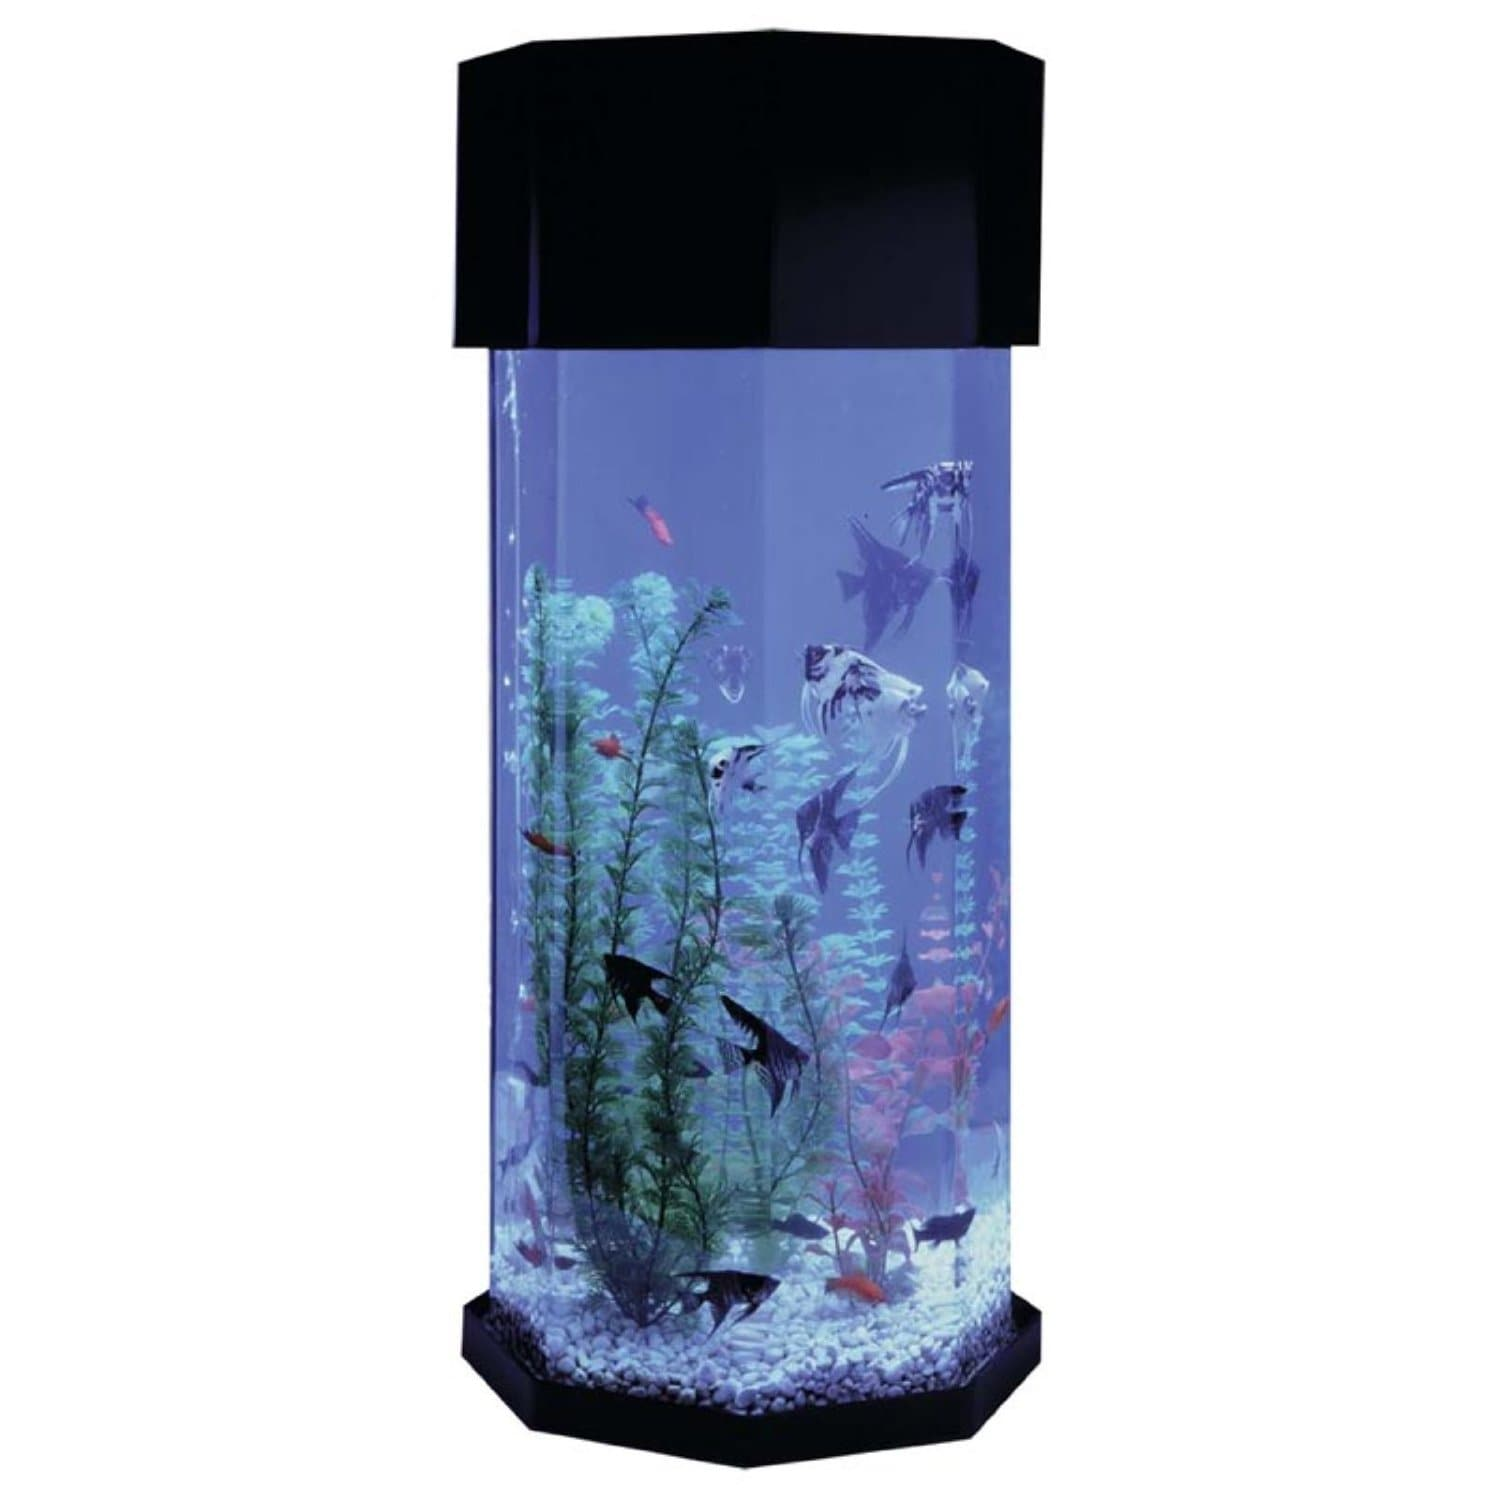 Funny Fish Tank Decorations Fish Tanks Aquariums Pet Fish Bowls Stands Fishtankbankcom